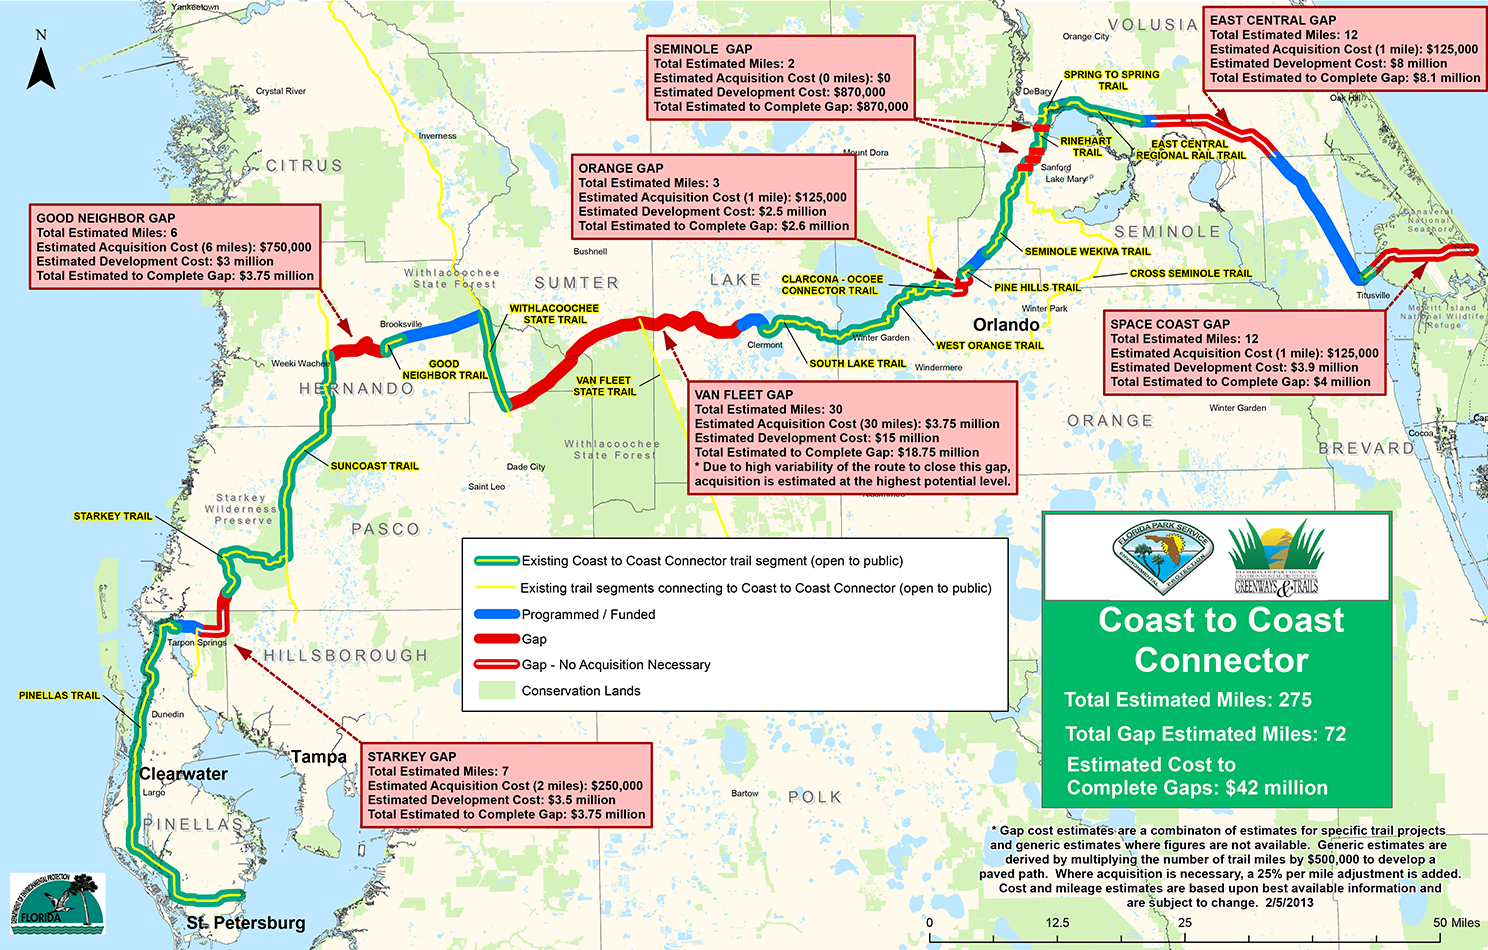 Rails To Trails Florida Map.Coast To Coast Connector Commute Orlando